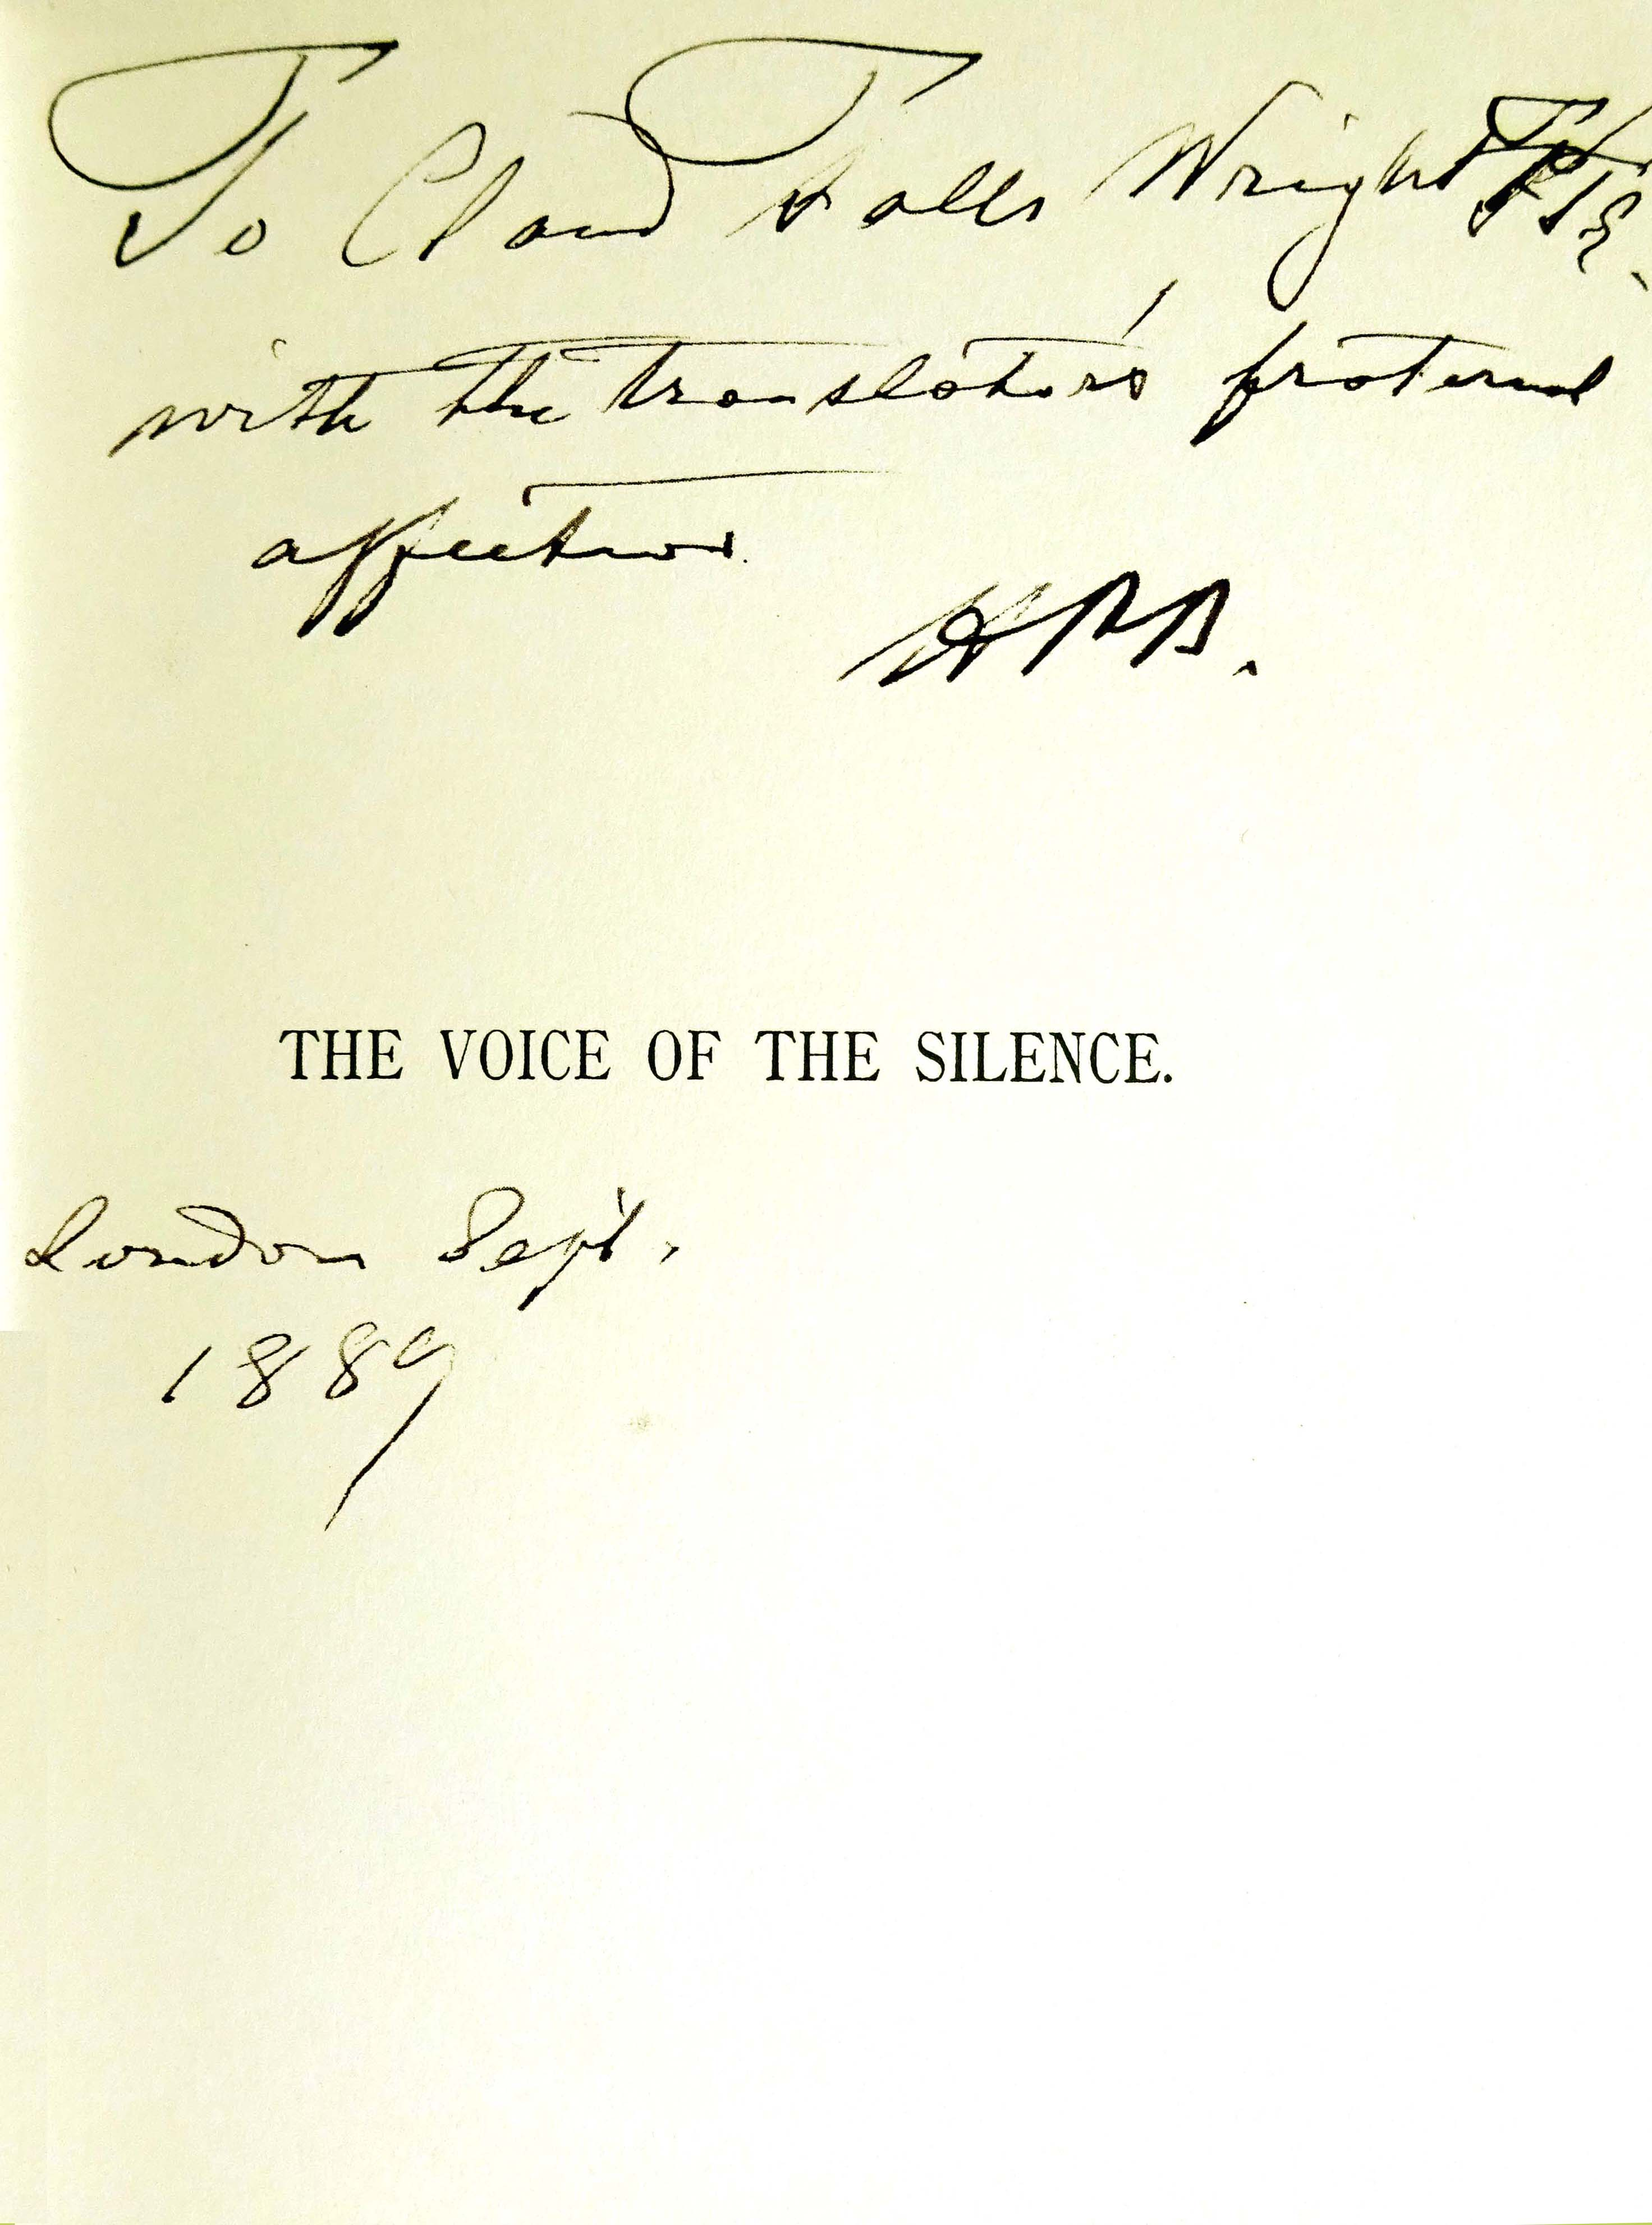 Voice of the Silence signed page with annotation